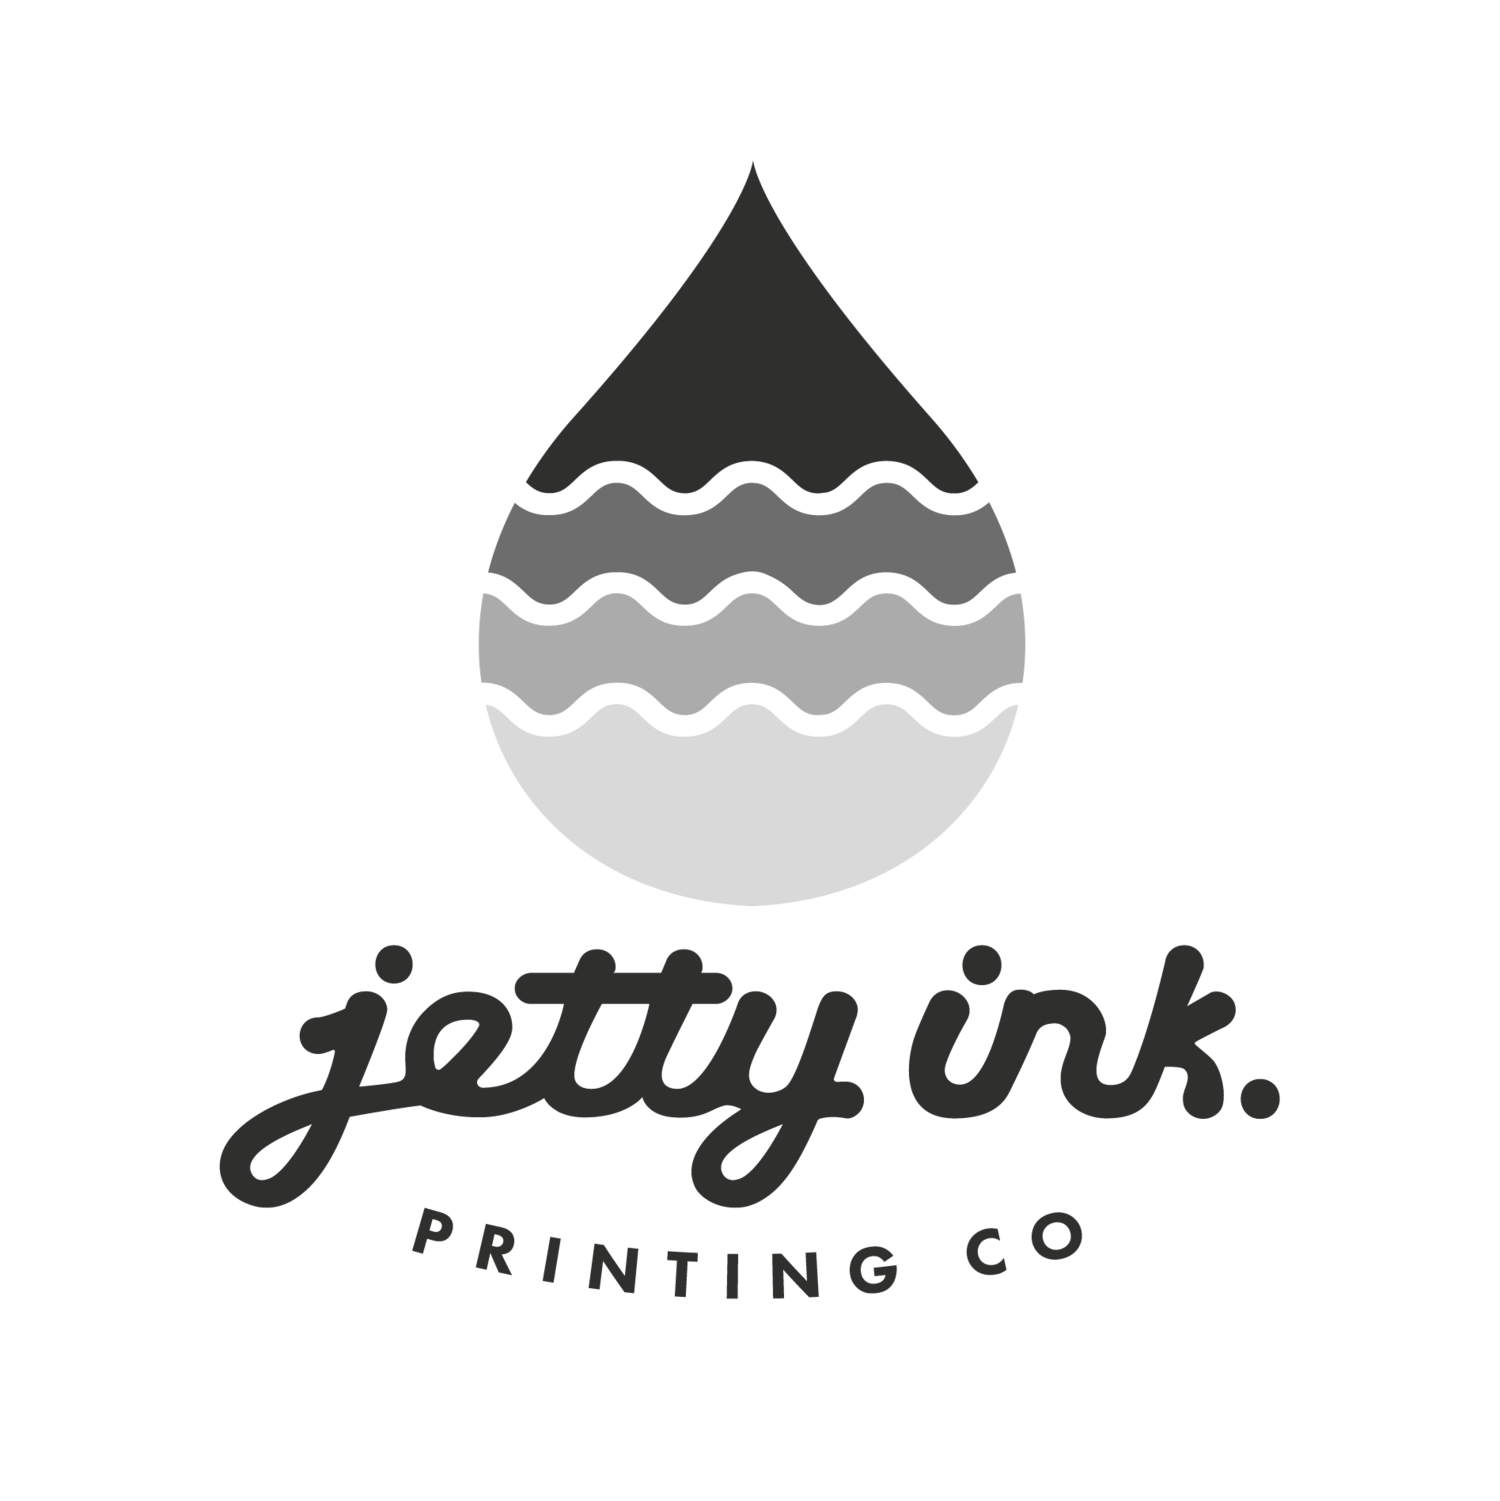 Jetty Ink.